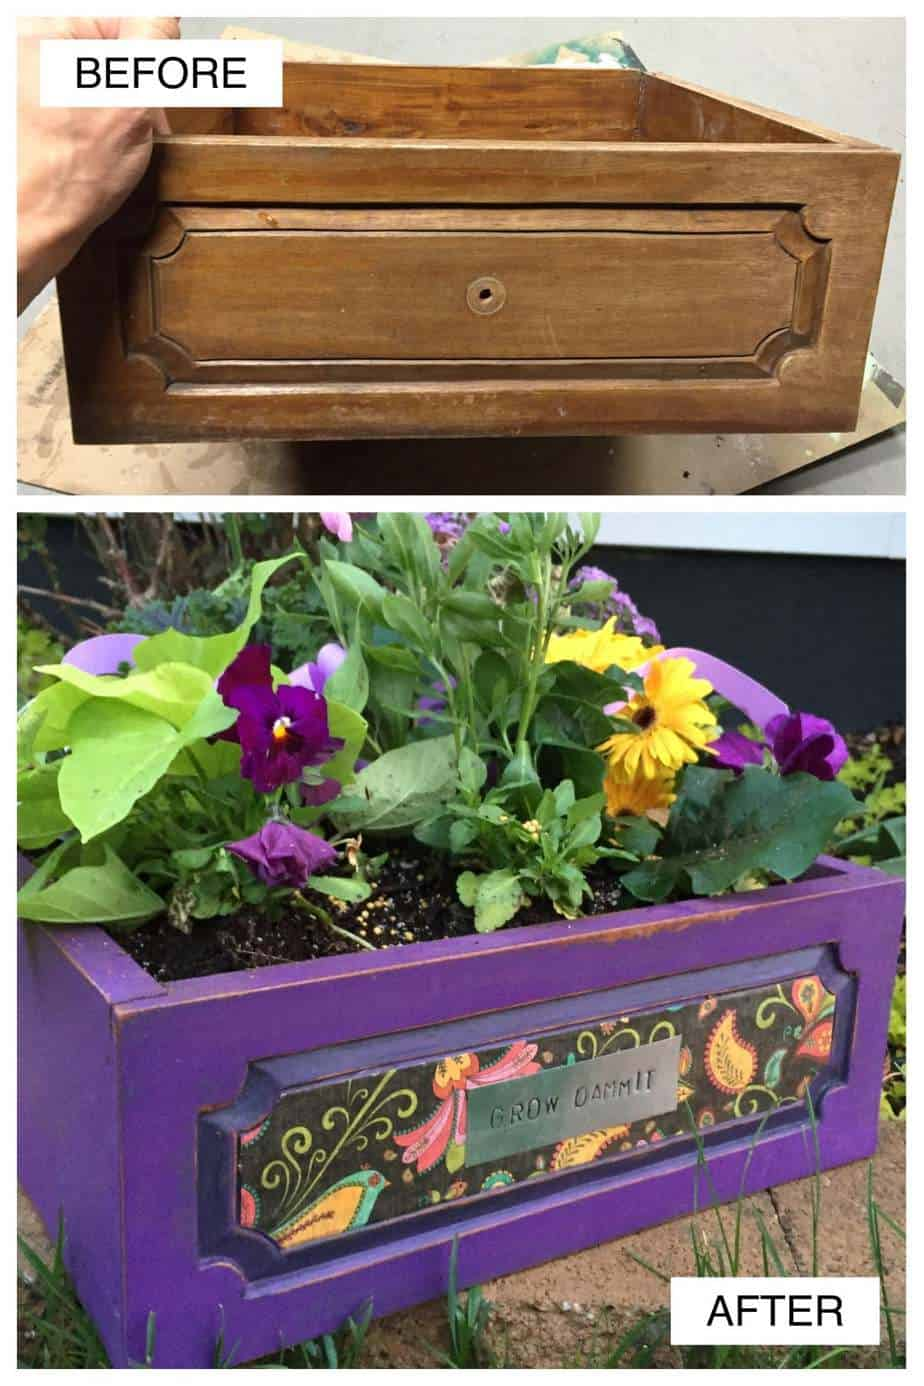 Cool DIY Projects - How to Make Planters from Old Drawers Before & After